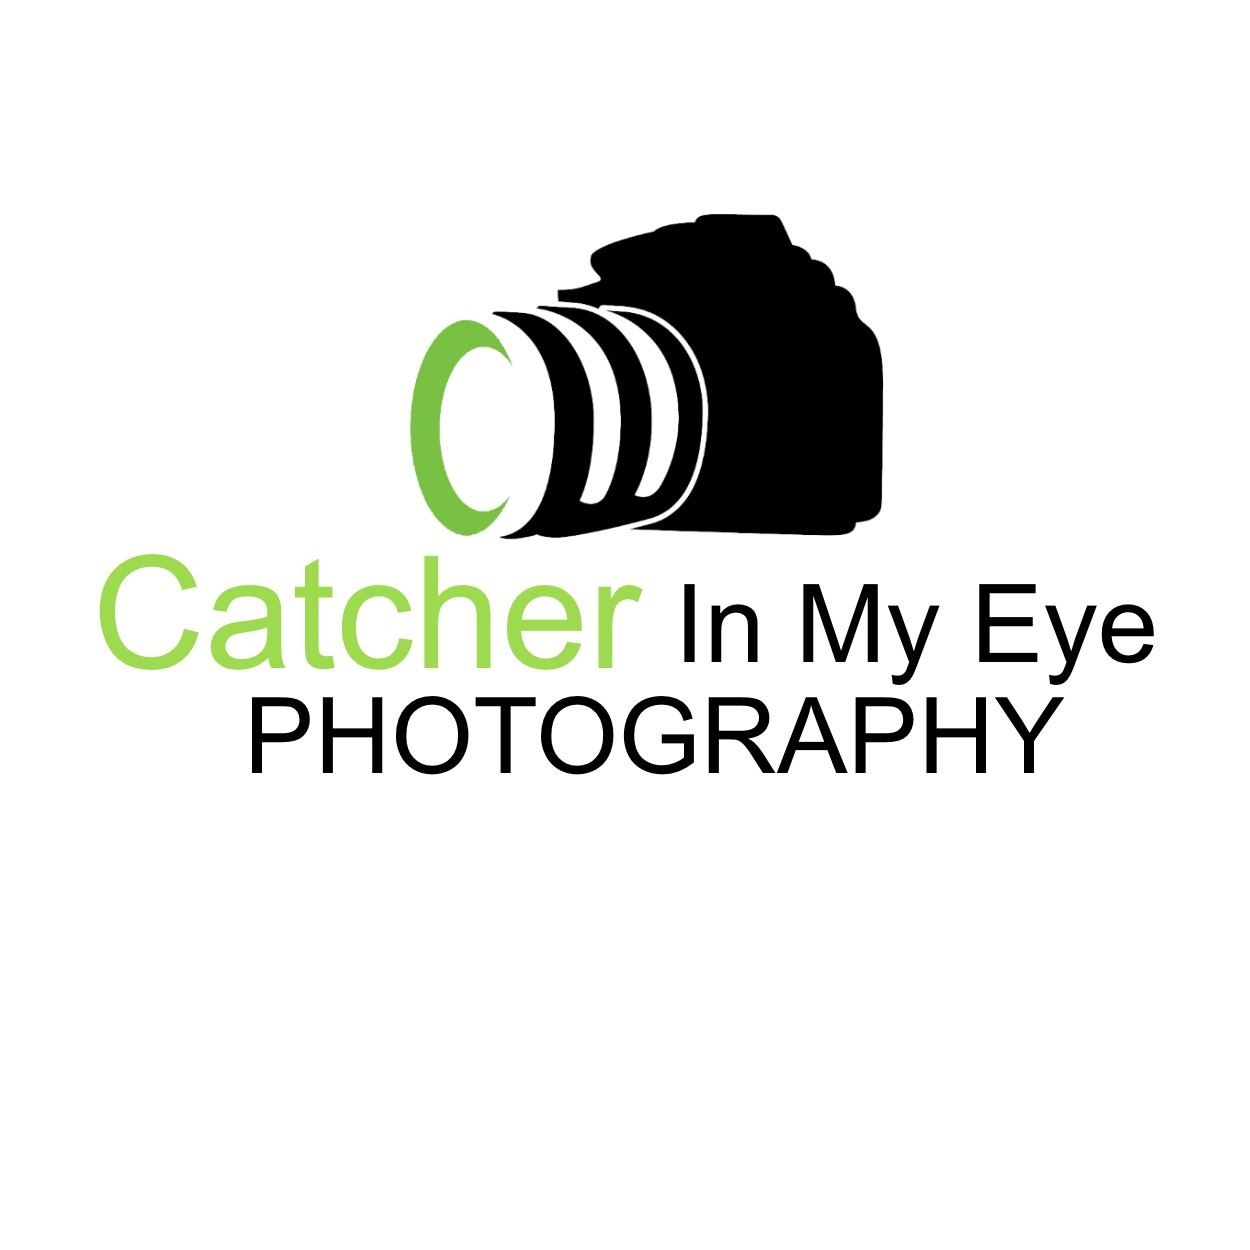 ... Design by Umer Ahmed for Photography Logo/ Watermark - Design #1519673